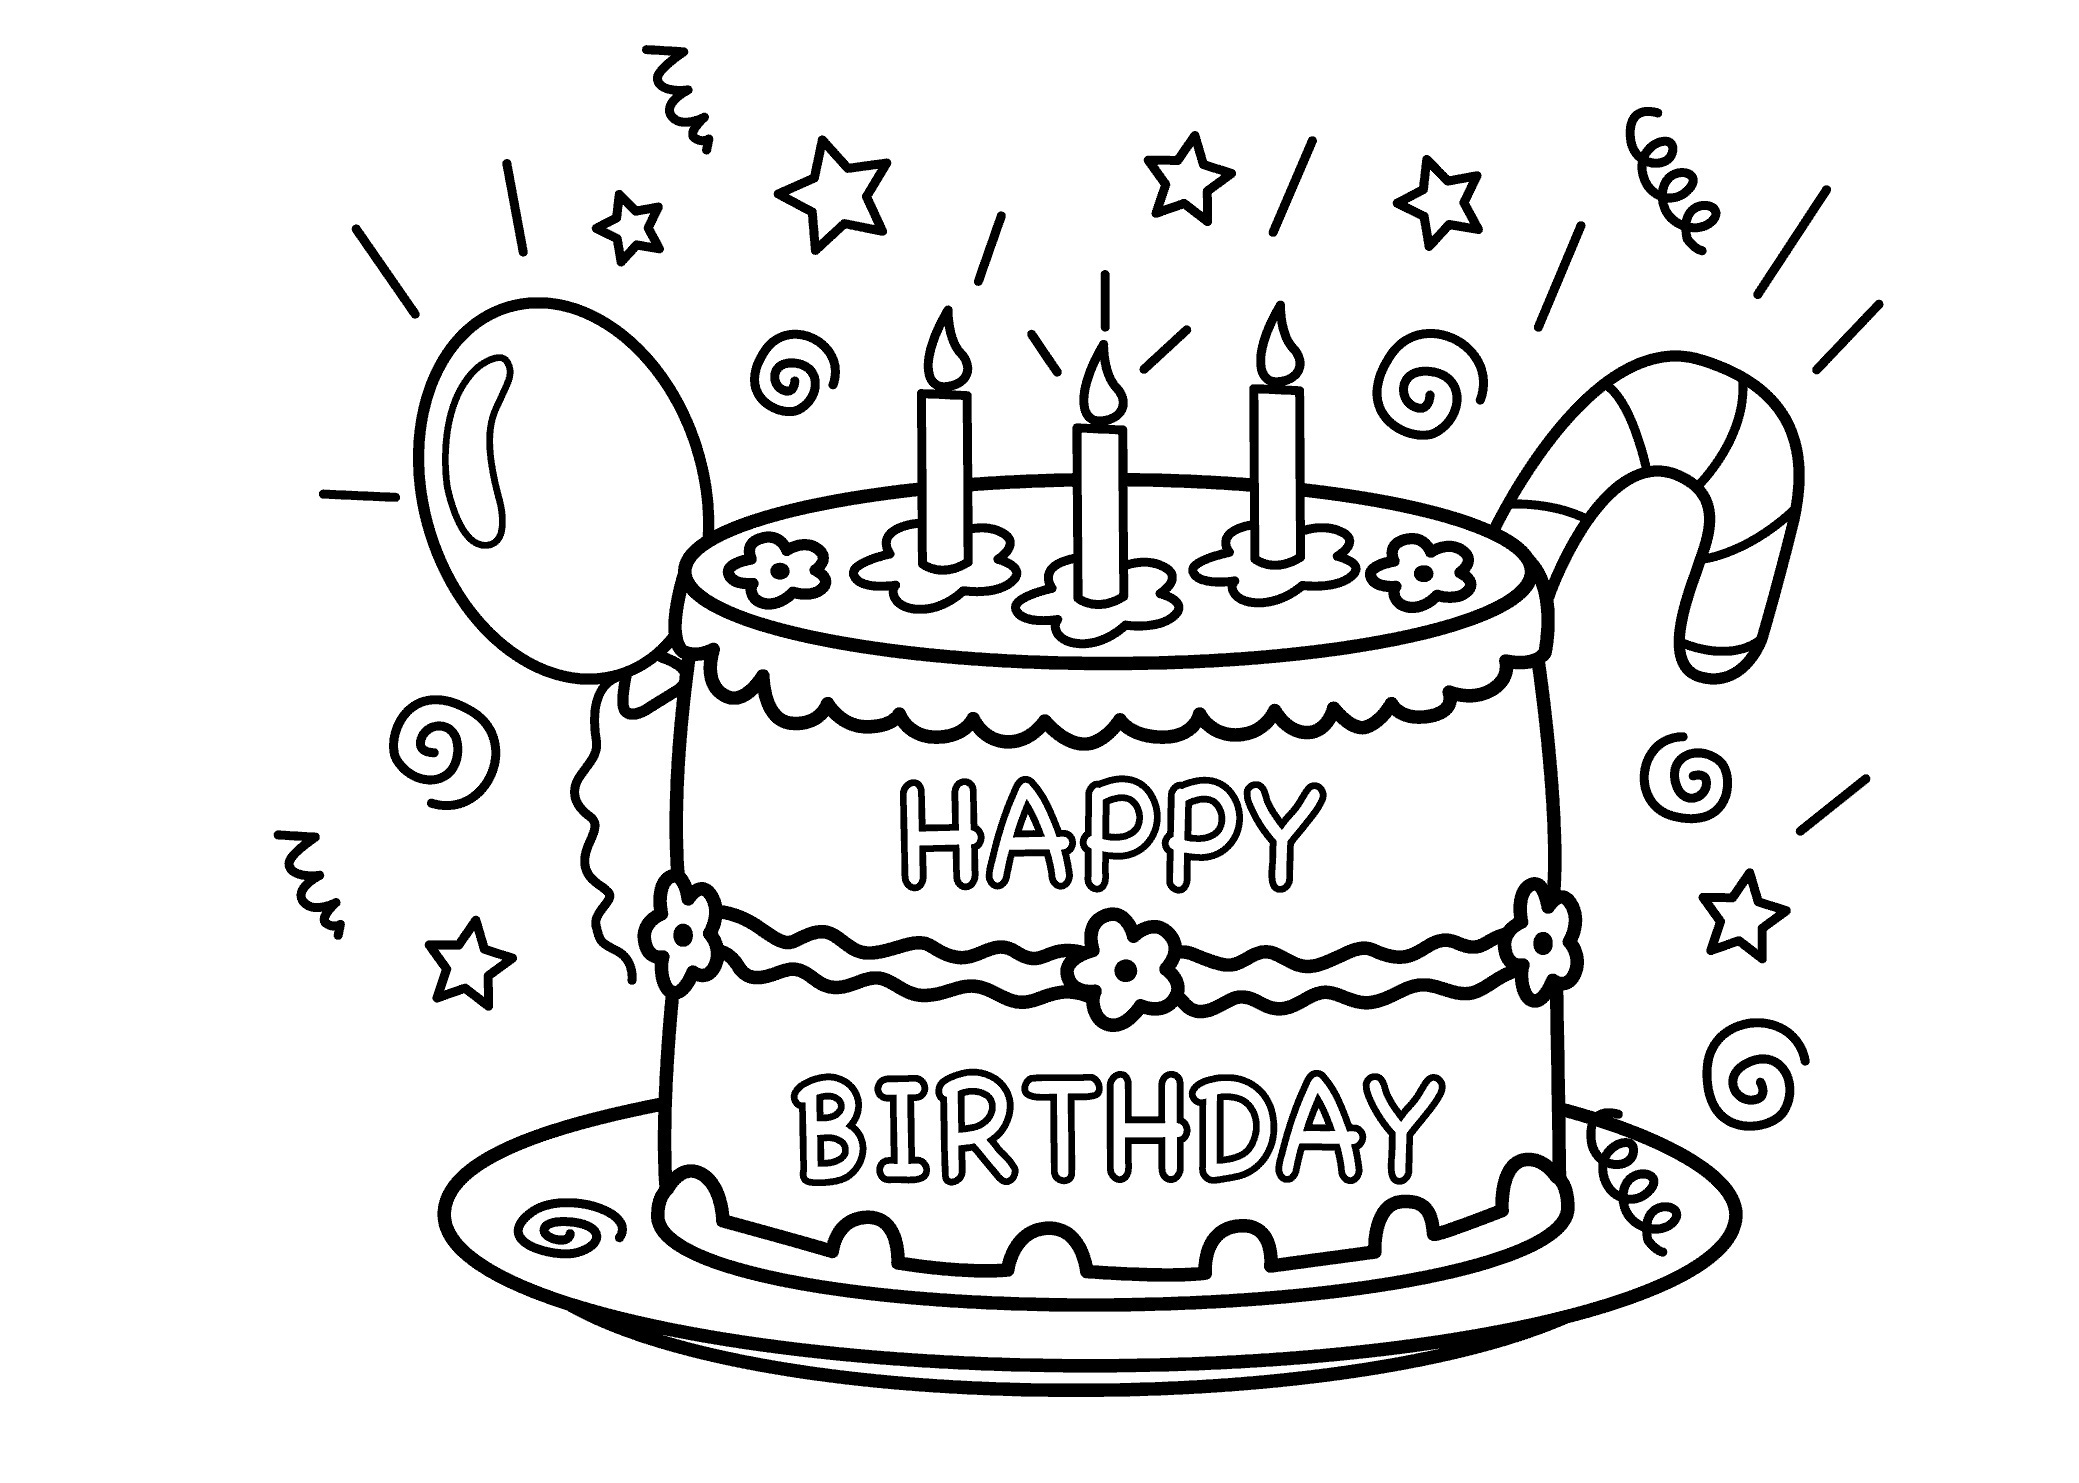 photo regarding Birthday Cake Printable titled No cost Printable Birthday Cake Coloring Web pages For Young children